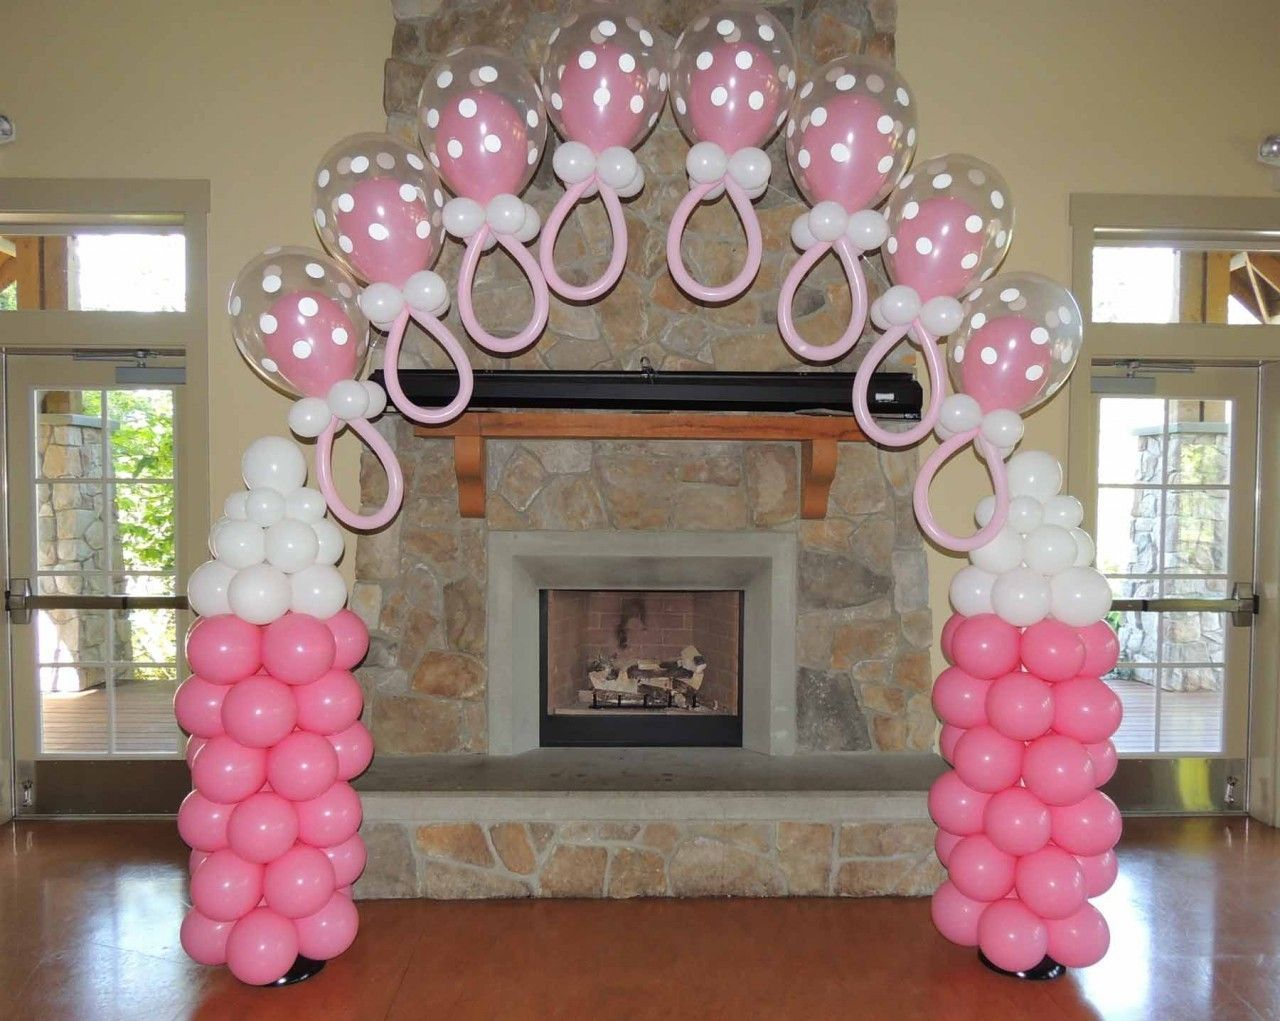 Best 25 baby shower balloons ideas on pinterest baby for Baby shower decoration ideas pinterest